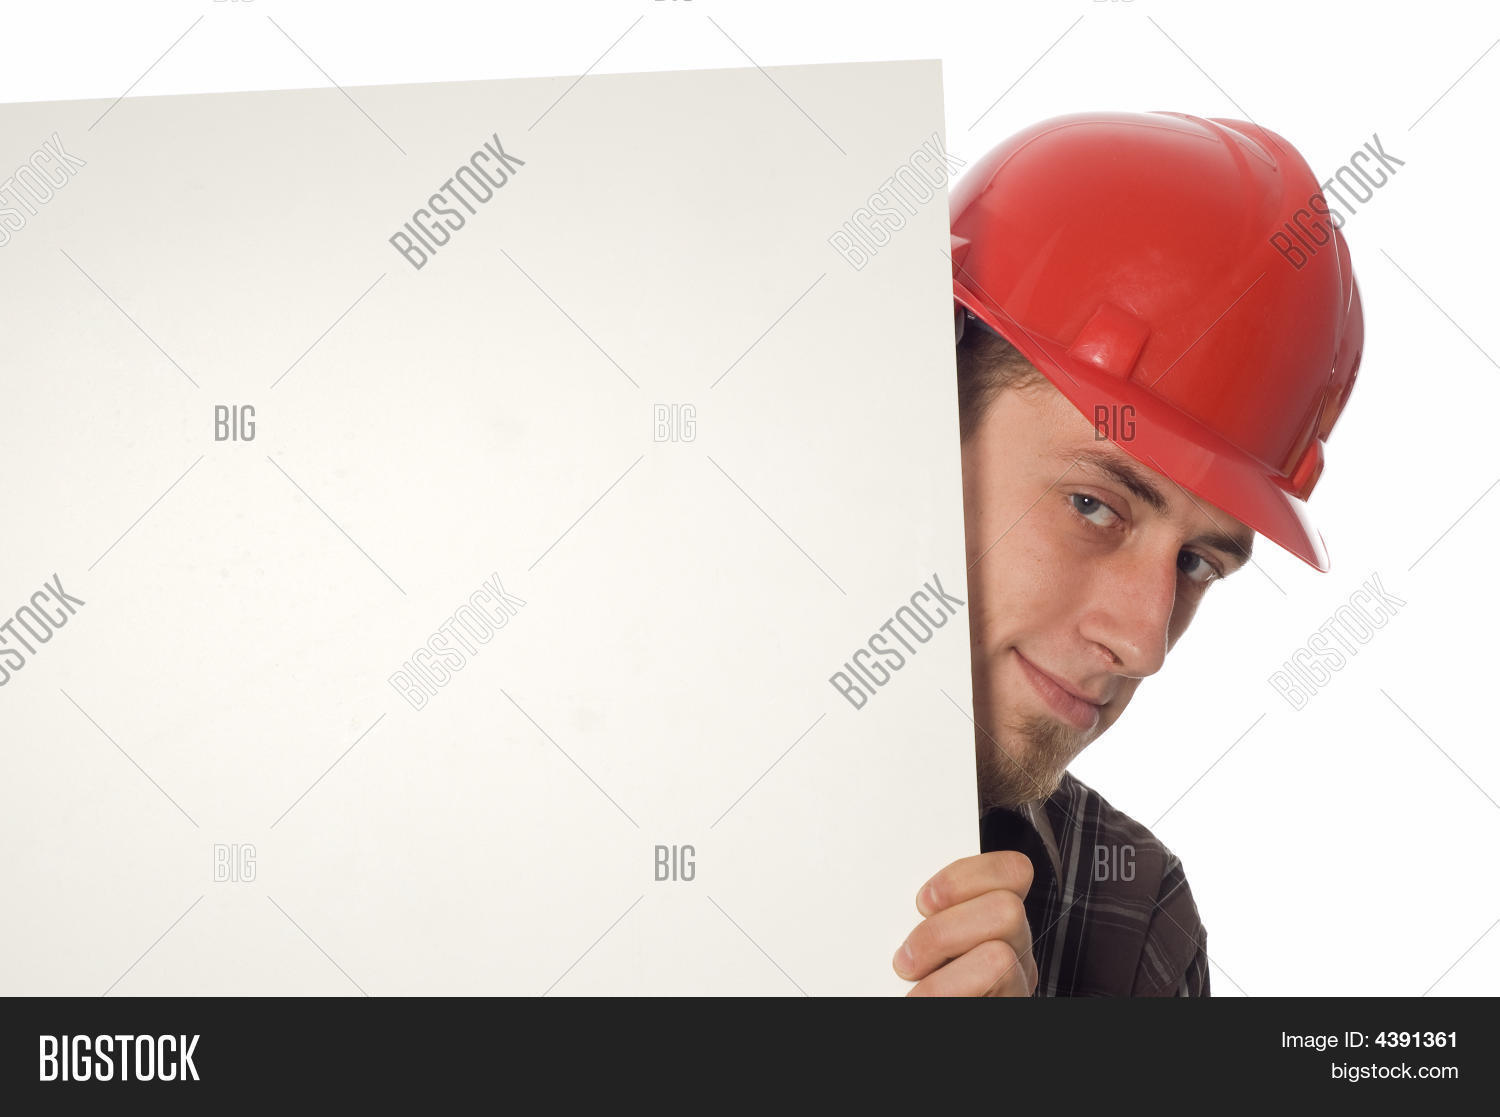 active,adult,advert,advertise,advertisement,advertising,architect,architecture,banner,blank,board,businesswoman,card,caucasian,communications,construction,demonstrate,demonstration,display,expression,expressive,hands,happiness,happy,hard,hardhat,hat,helmet,hold,industry,job,male,man,people,person,portrait,poster,professional,safety,show,showing,sign,smile,staff,standing,white,work,worker,young